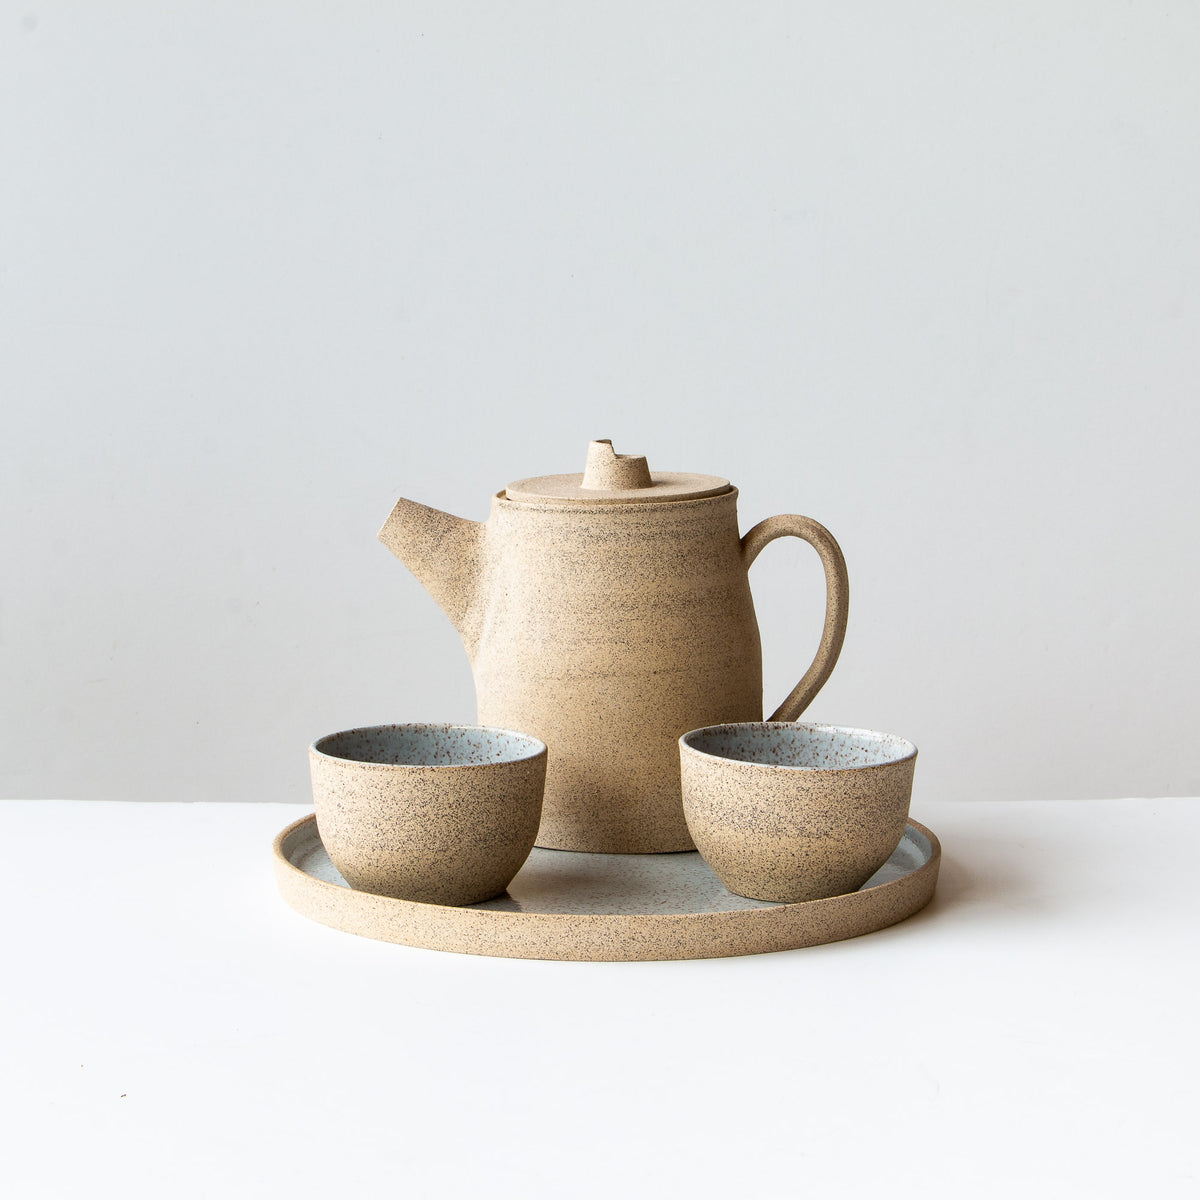 Shown With Cups & Plate - Speckled Stoneware Tea-pot - Pale Blue Glaze - Sold by Chic & Basta